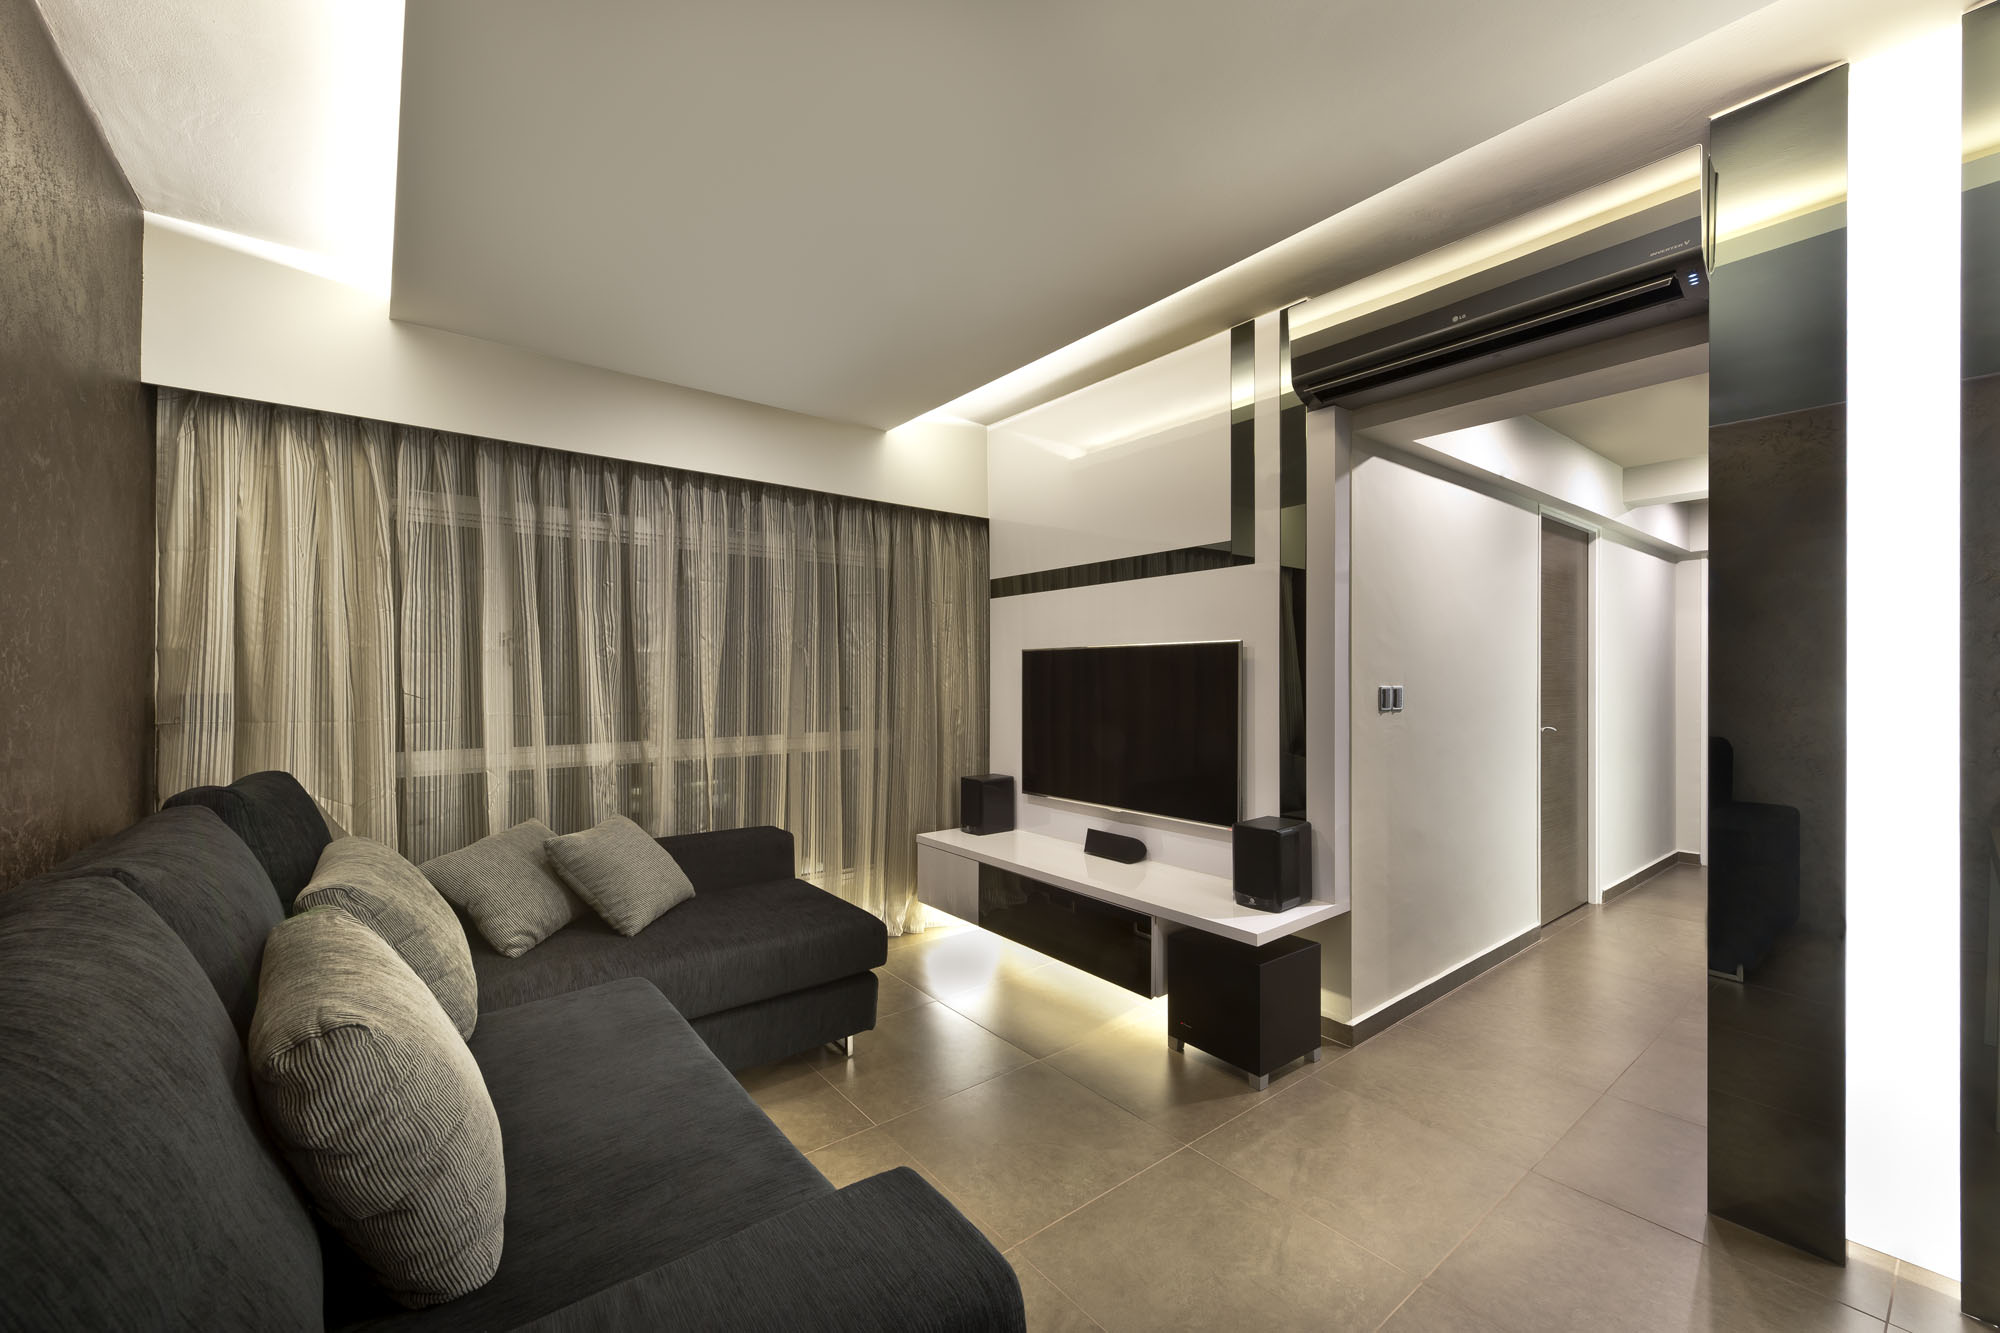 Featured Portfolio Hdb 4 Rooms At Yishun Rezt Relax Interior Design Singaporerezt Relax Interior Design Singapore